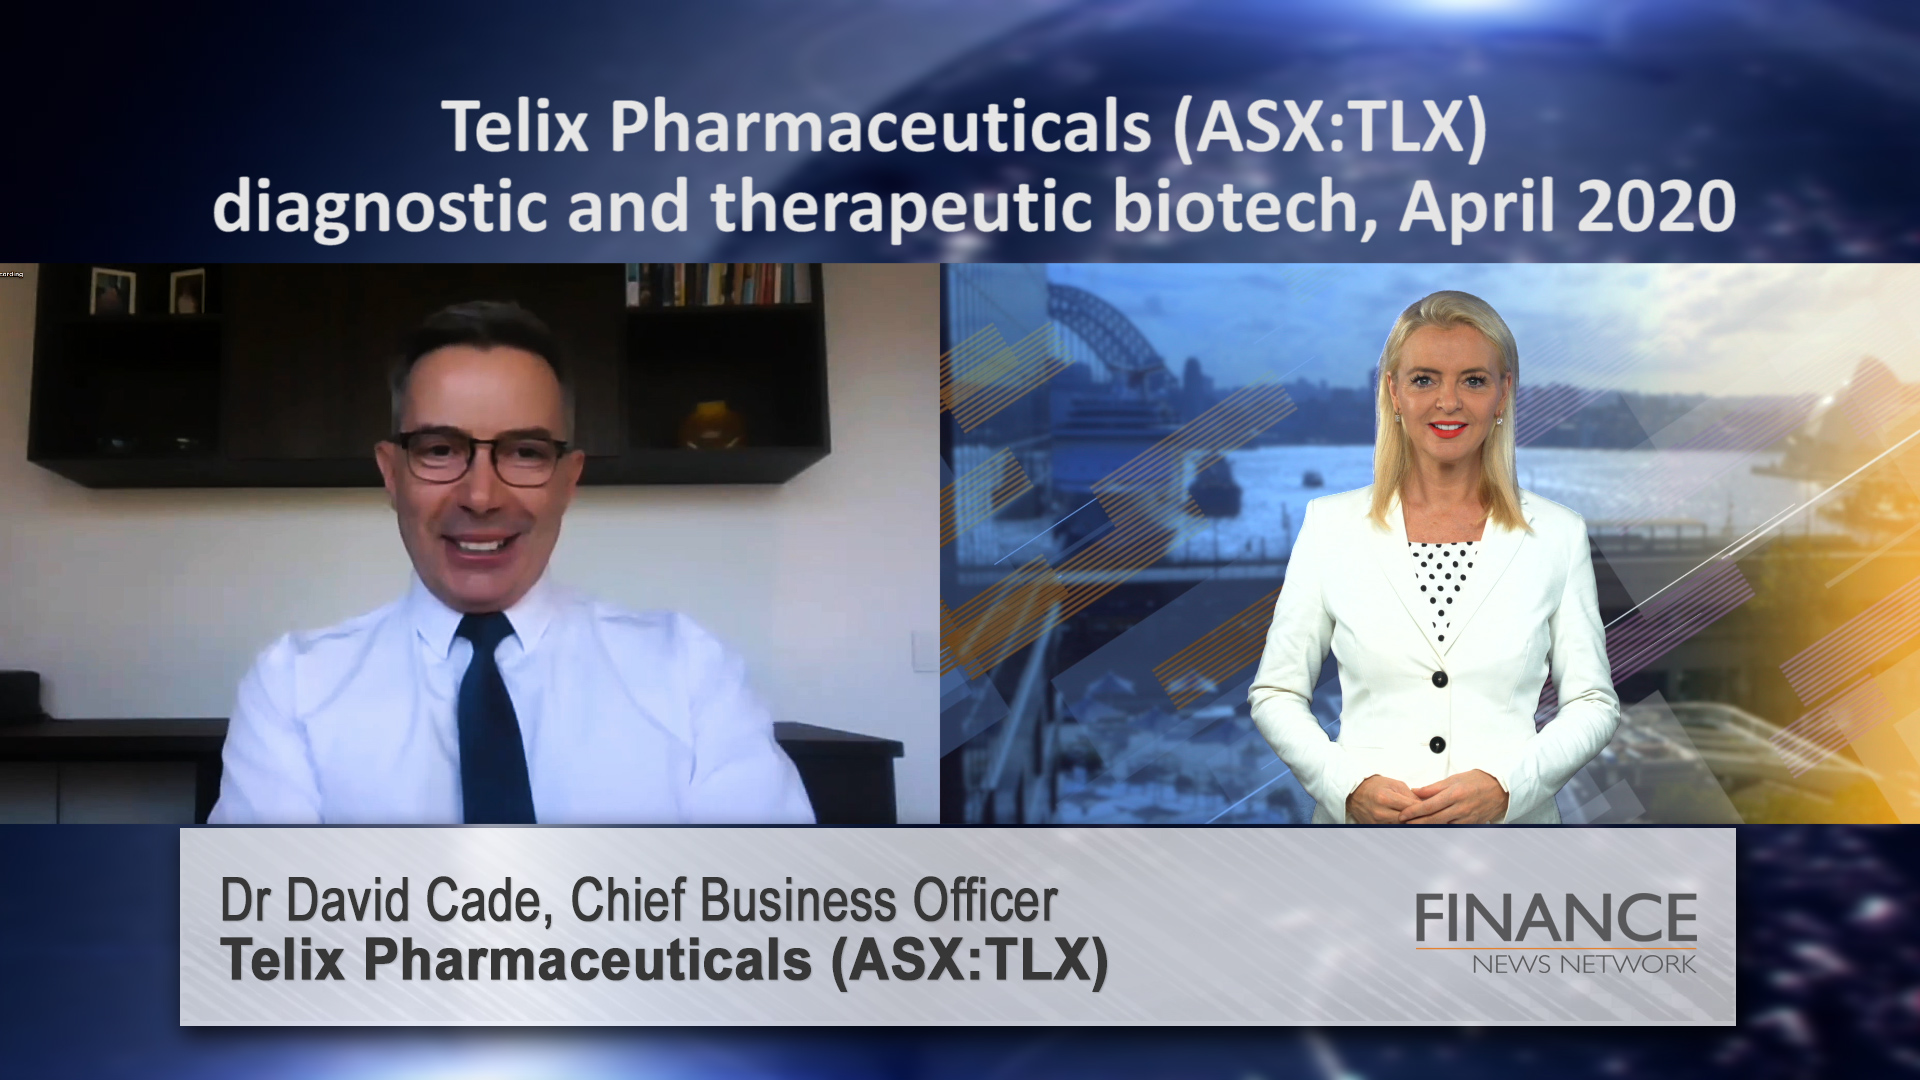 Telix Pharmaceuticals (ASX:TLX) diagnostic and therapeutic biotech